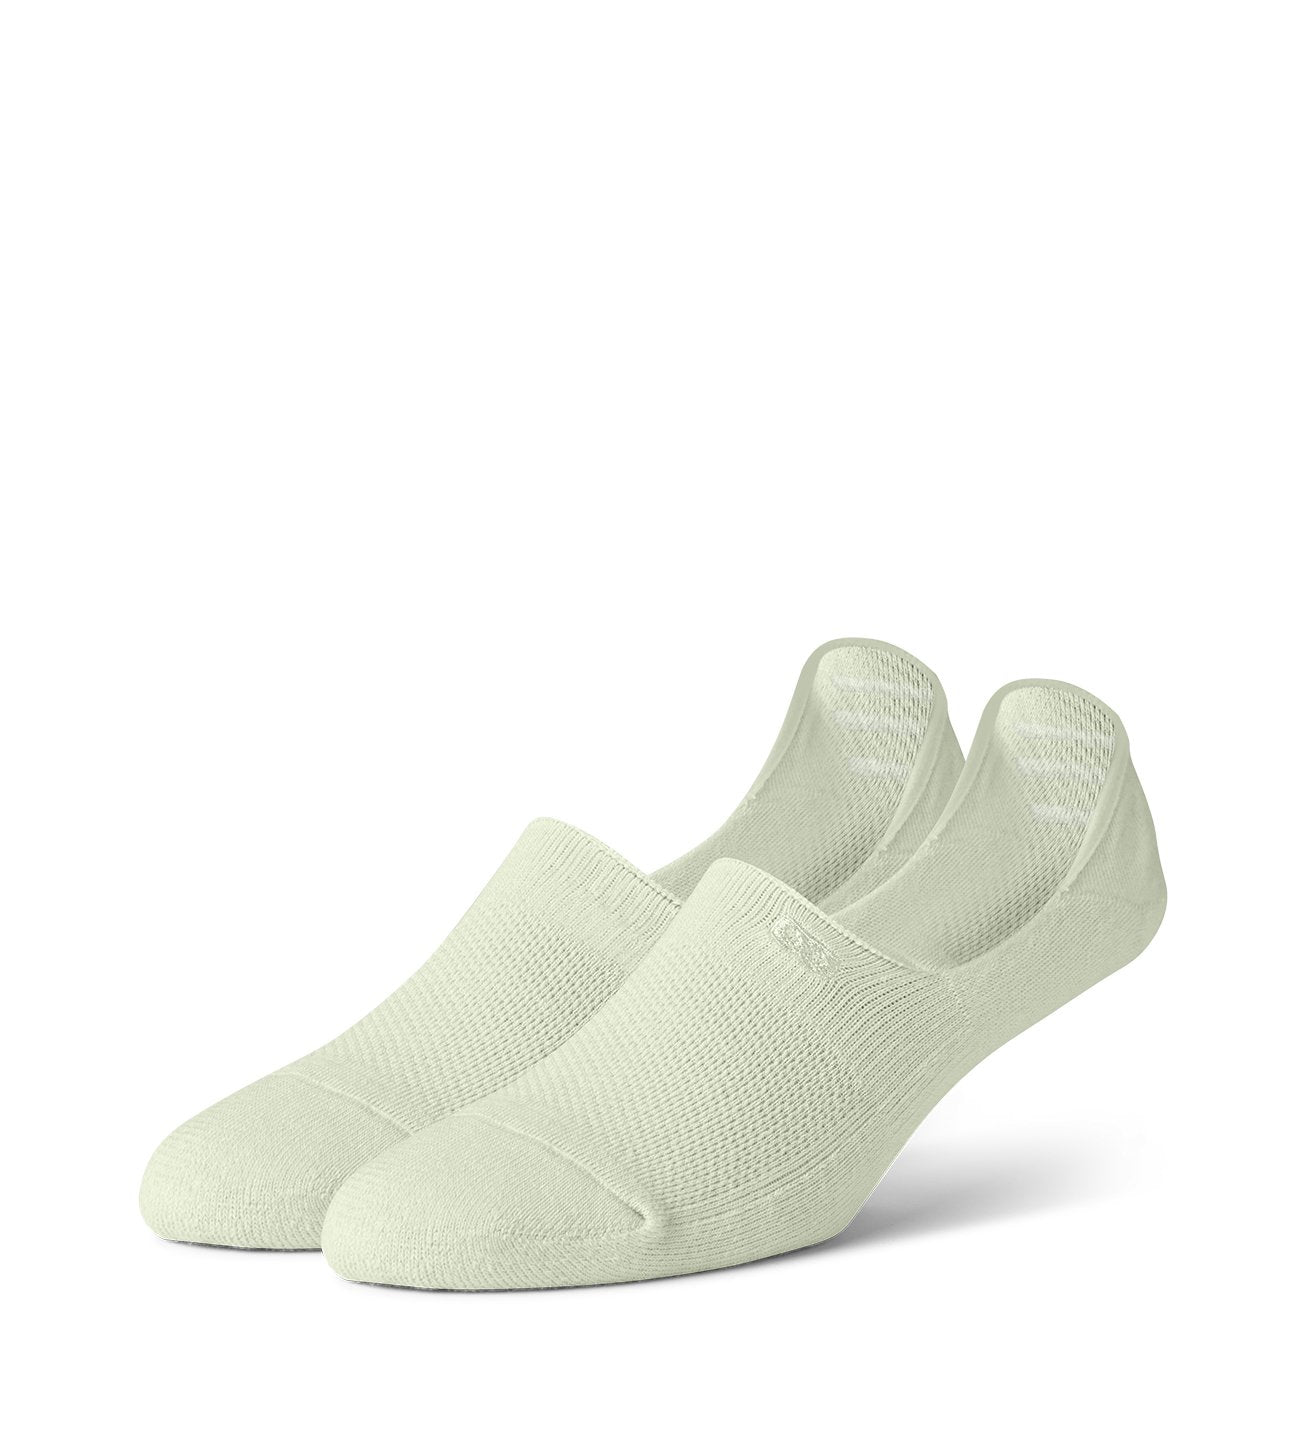 Mint Women's Prism Cushion No Show Socks